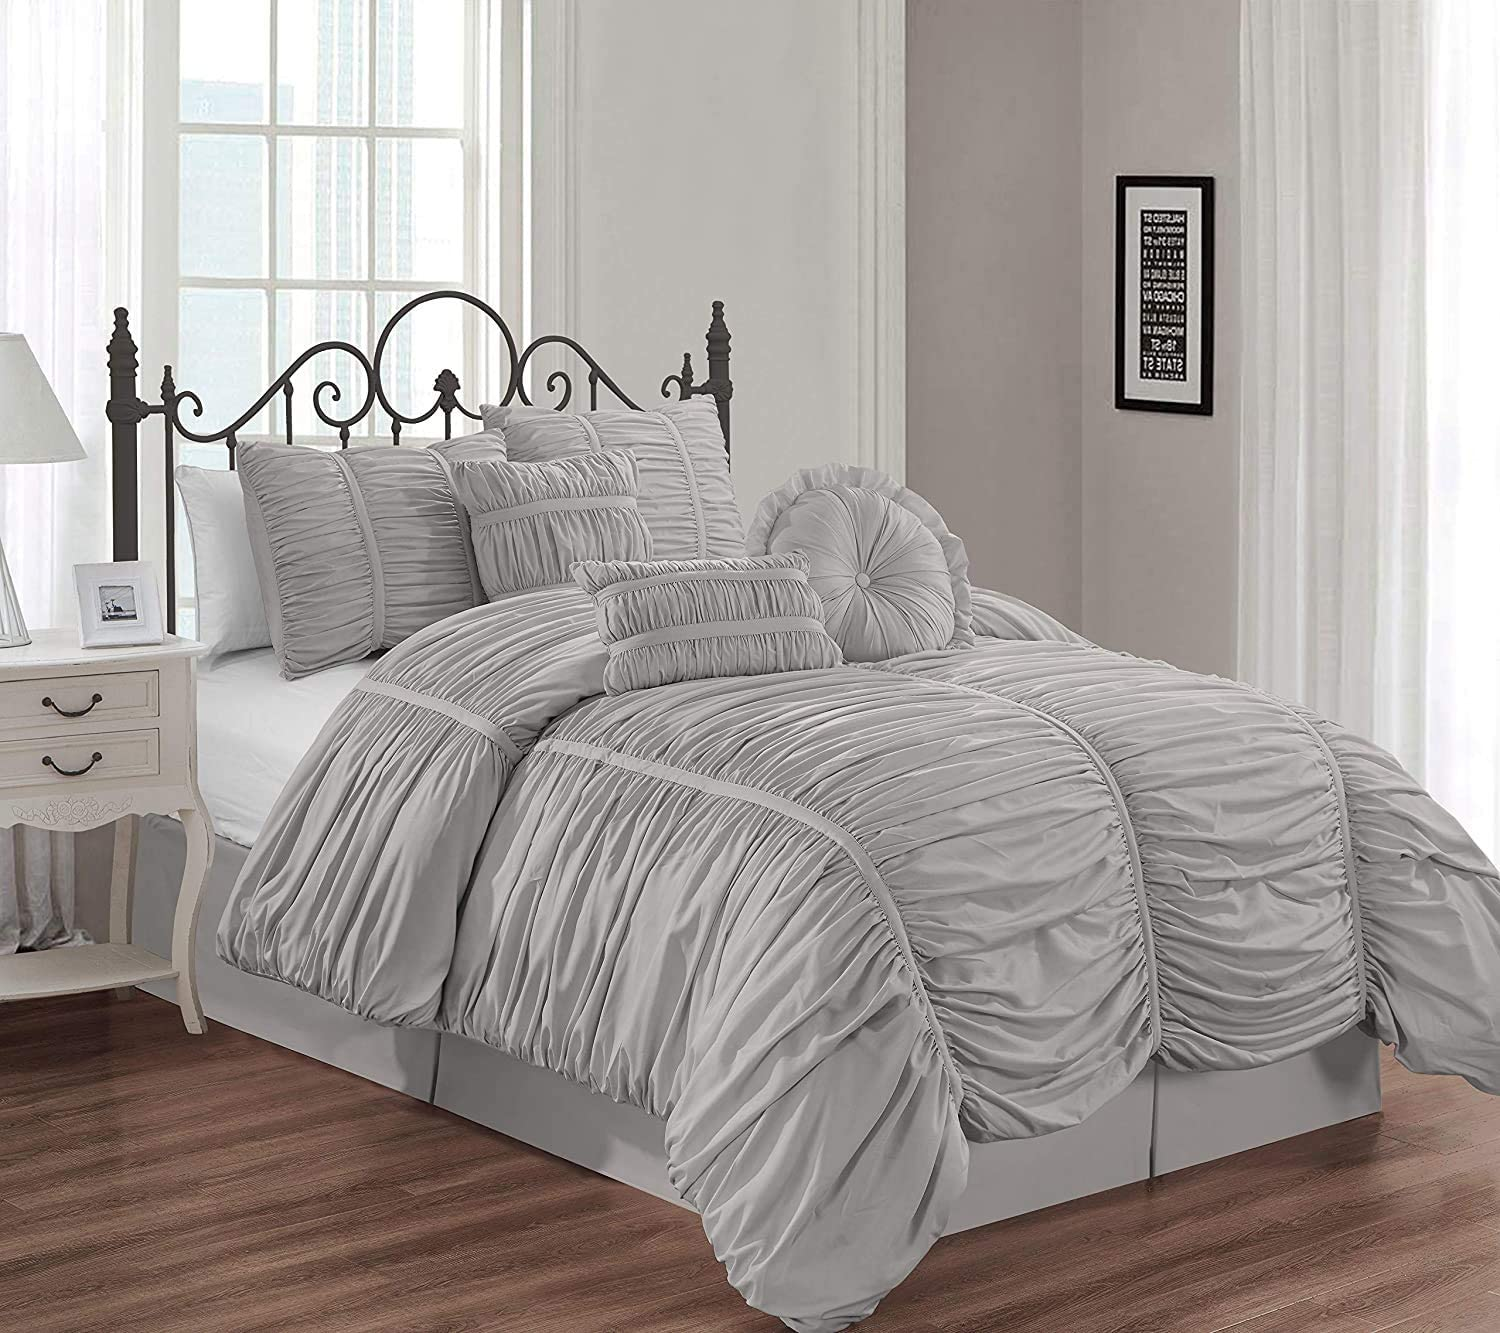 Chezmoi Collection Chic 7-Piece Silver Gray Ruched Ruffle Pleated Comforter Bedding Set, California King Size